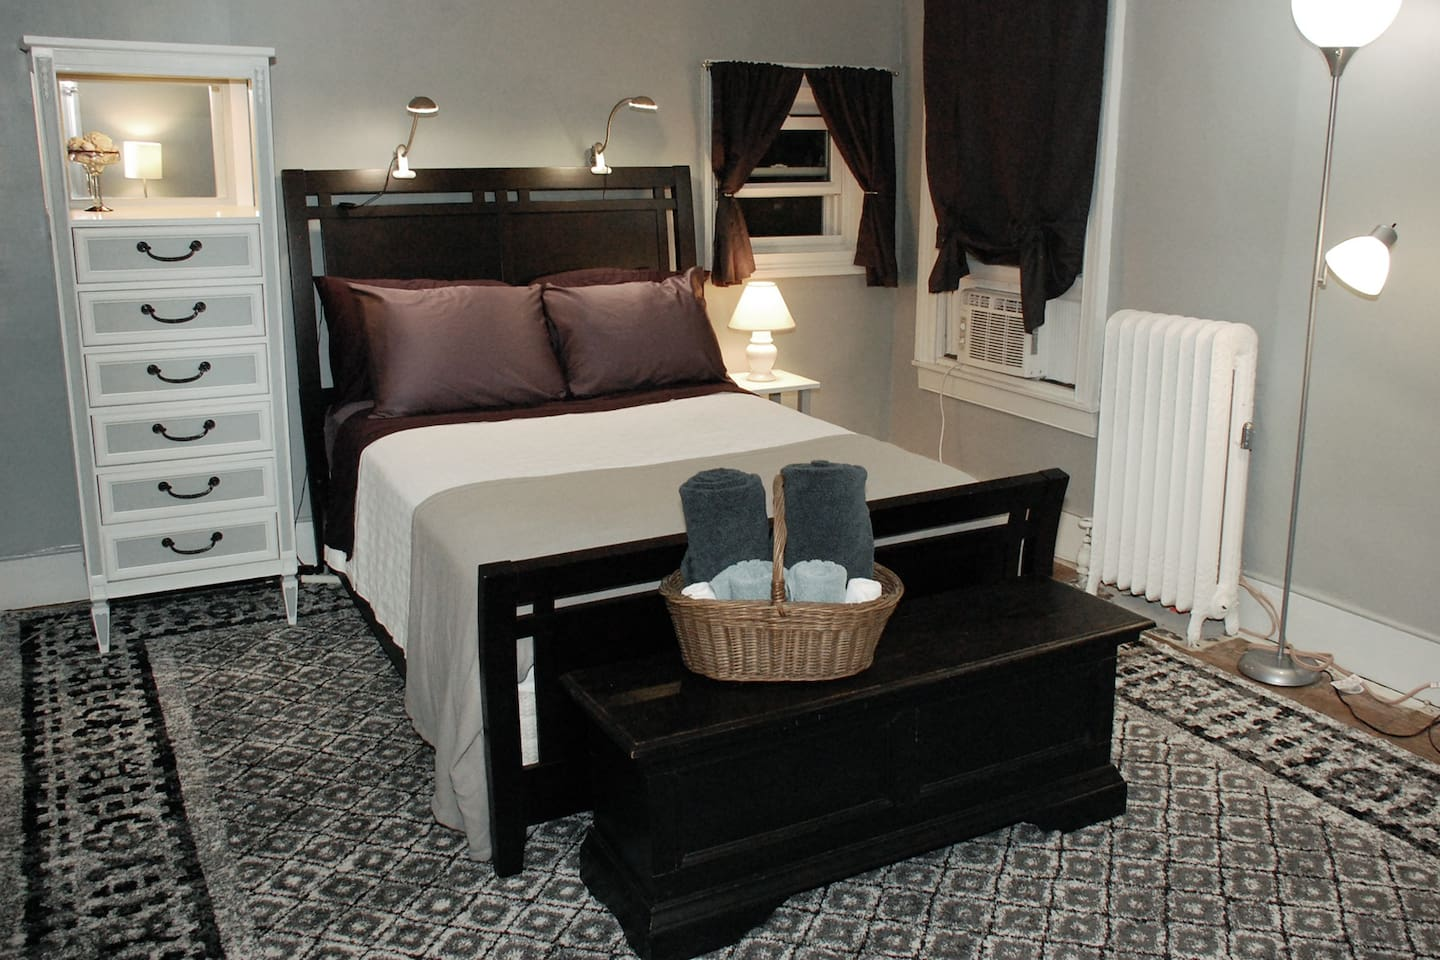 Private room features a full-sized bed.